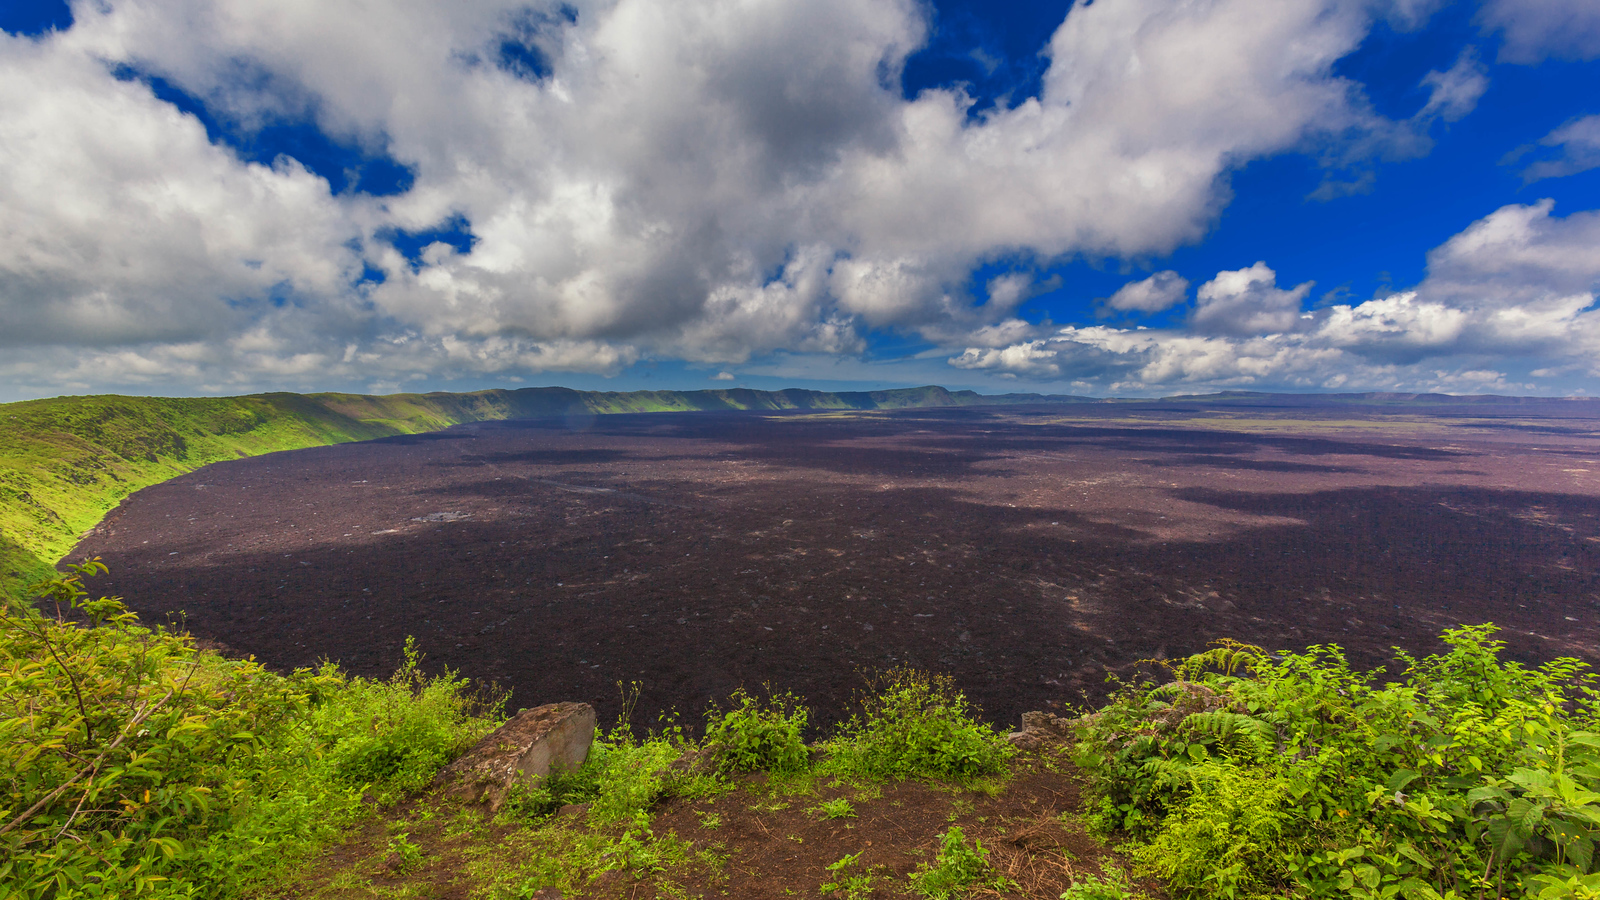 Looking over the caldera on Isabela Island